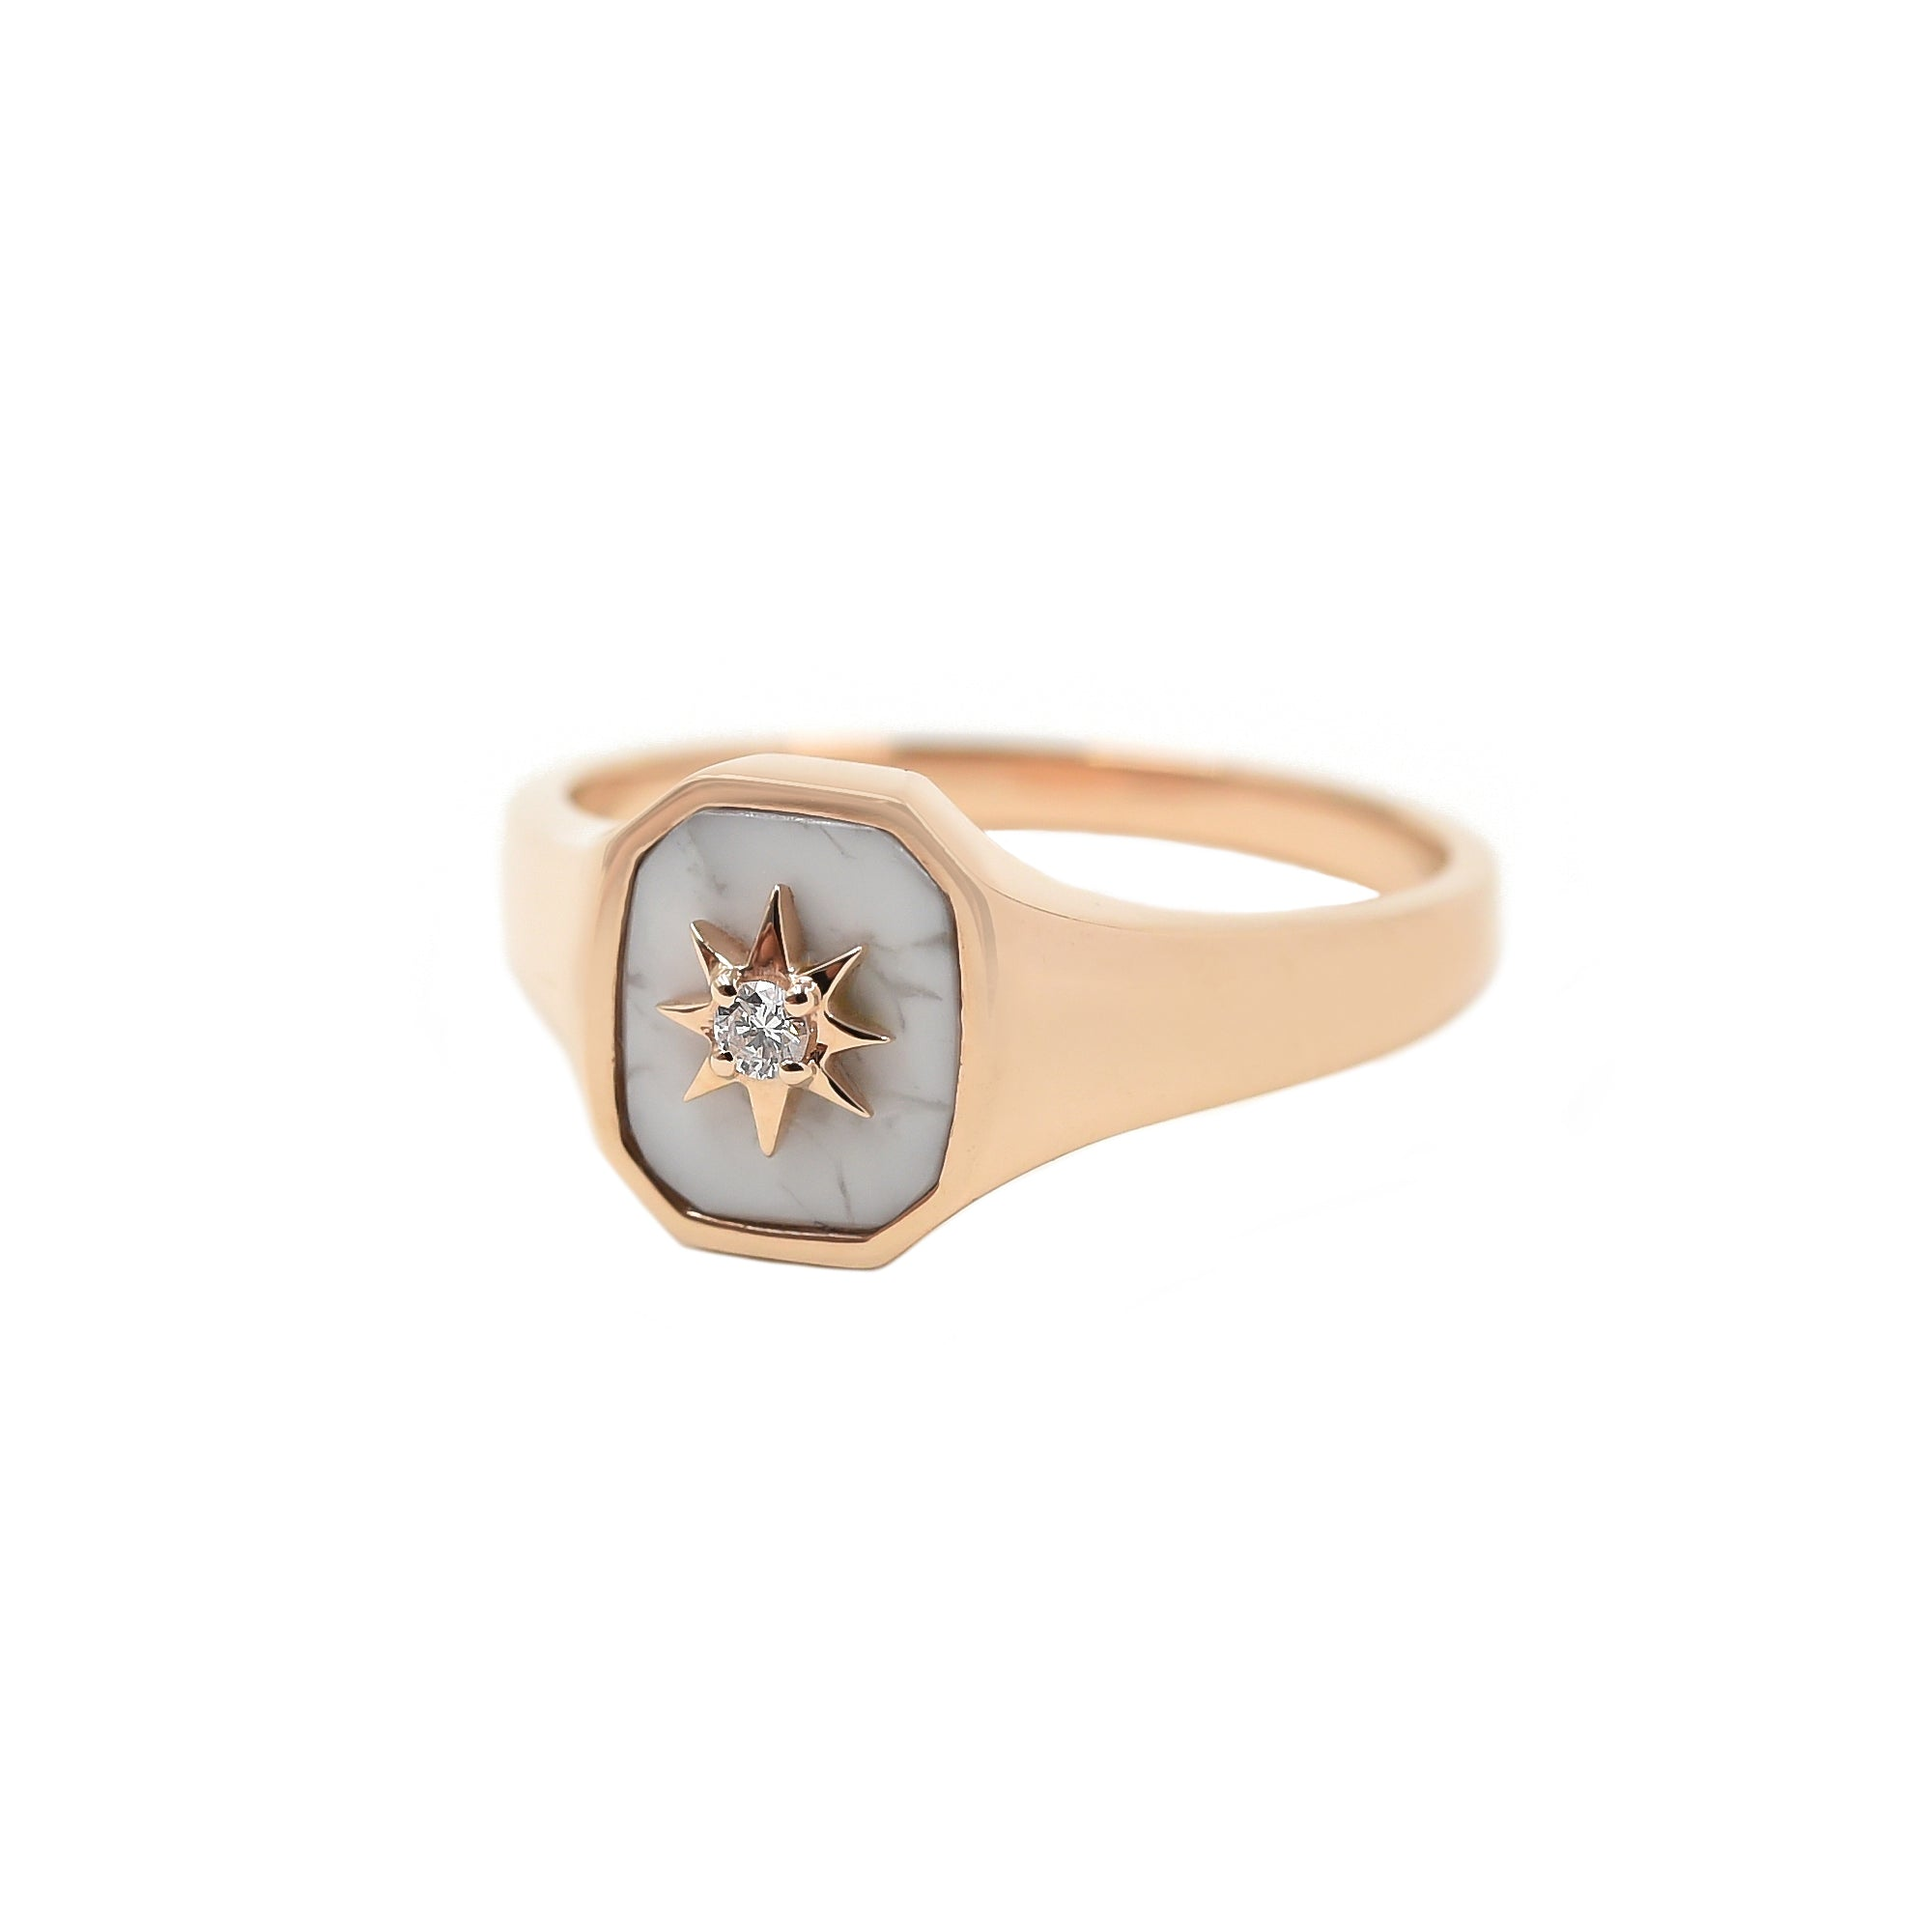 Howlite Josie Signet Ring - Bondeye - Ring | Broken English Jewelry